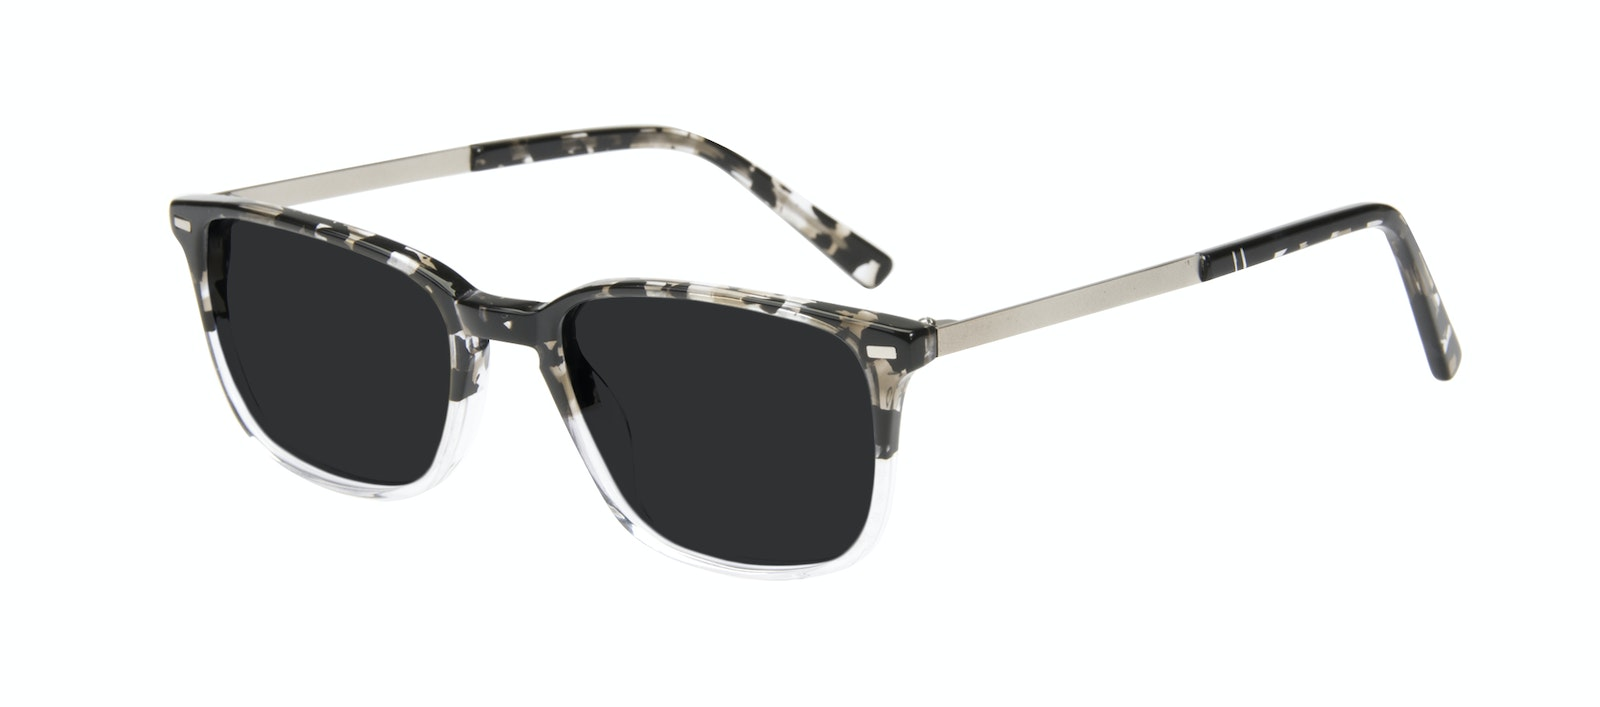 Affordable Fashion Glasses Rectangle Sunglasses Men Sharp Clear Stone Tilt